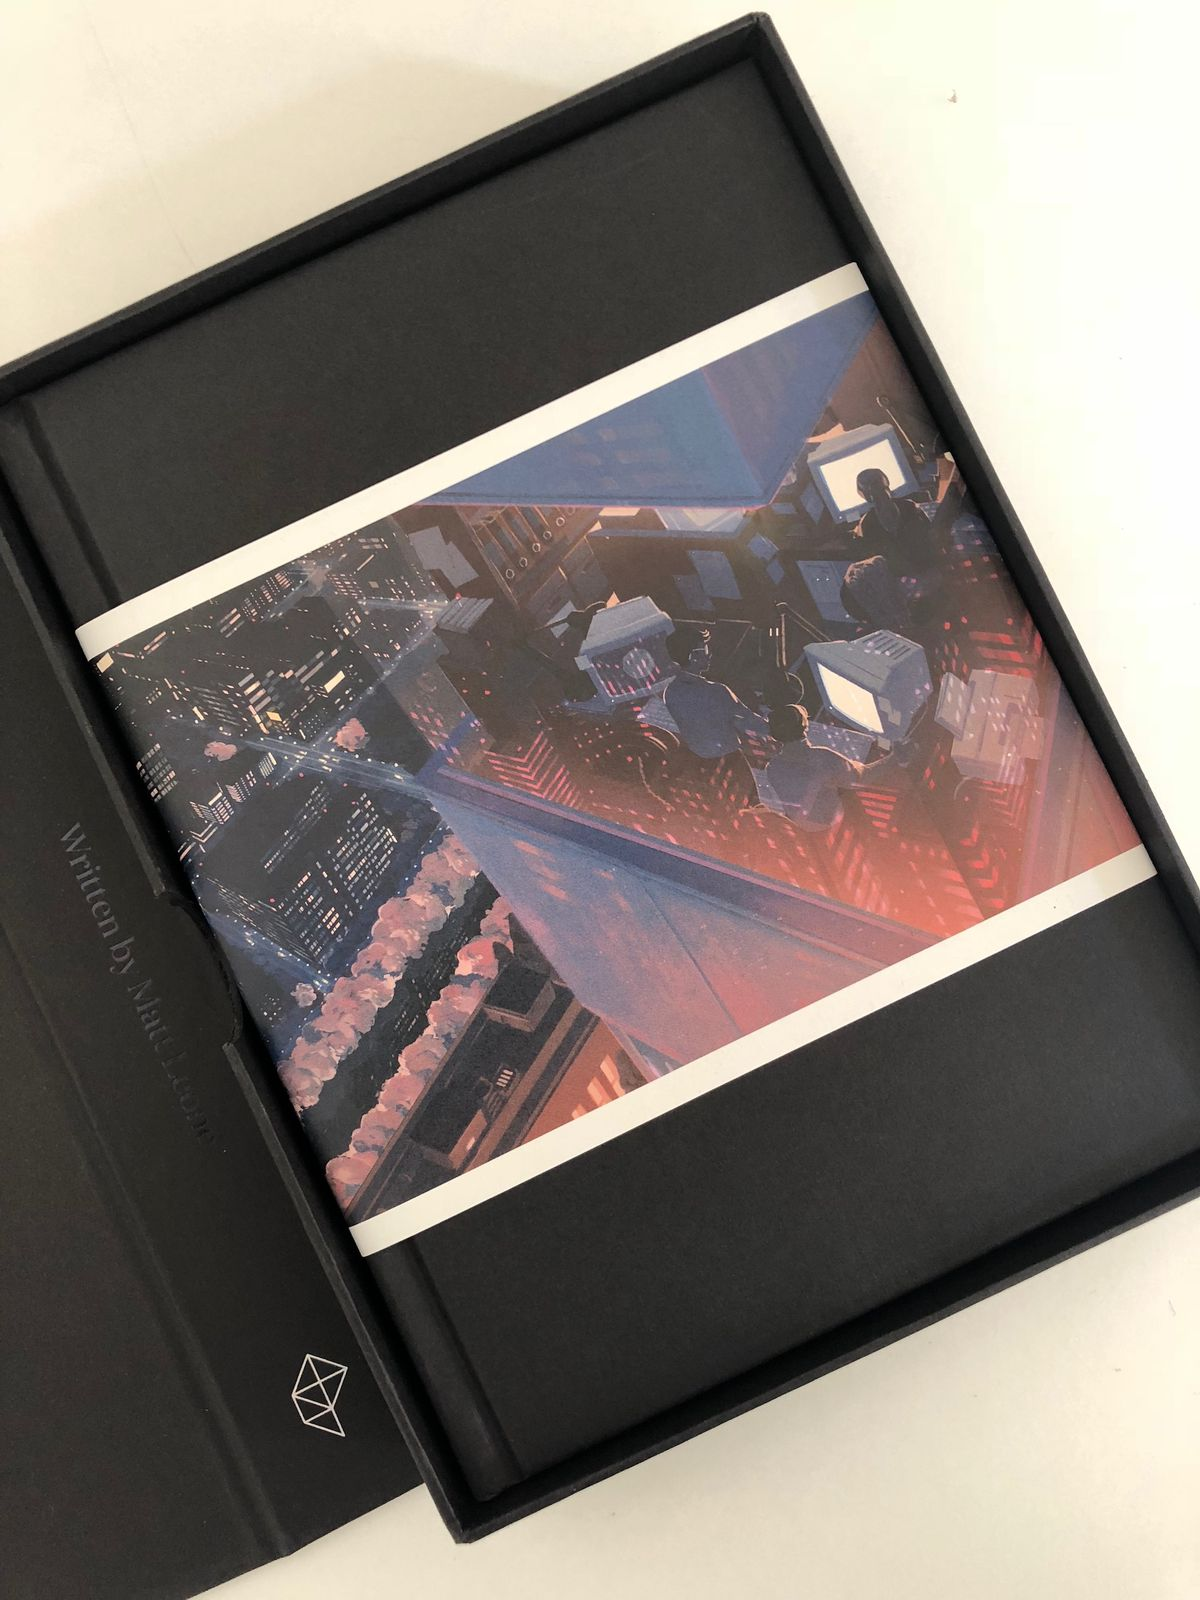 500 Years Later: An Oral History of Final Fantasy VII - photo of book sitting inside Special Box Set Edition